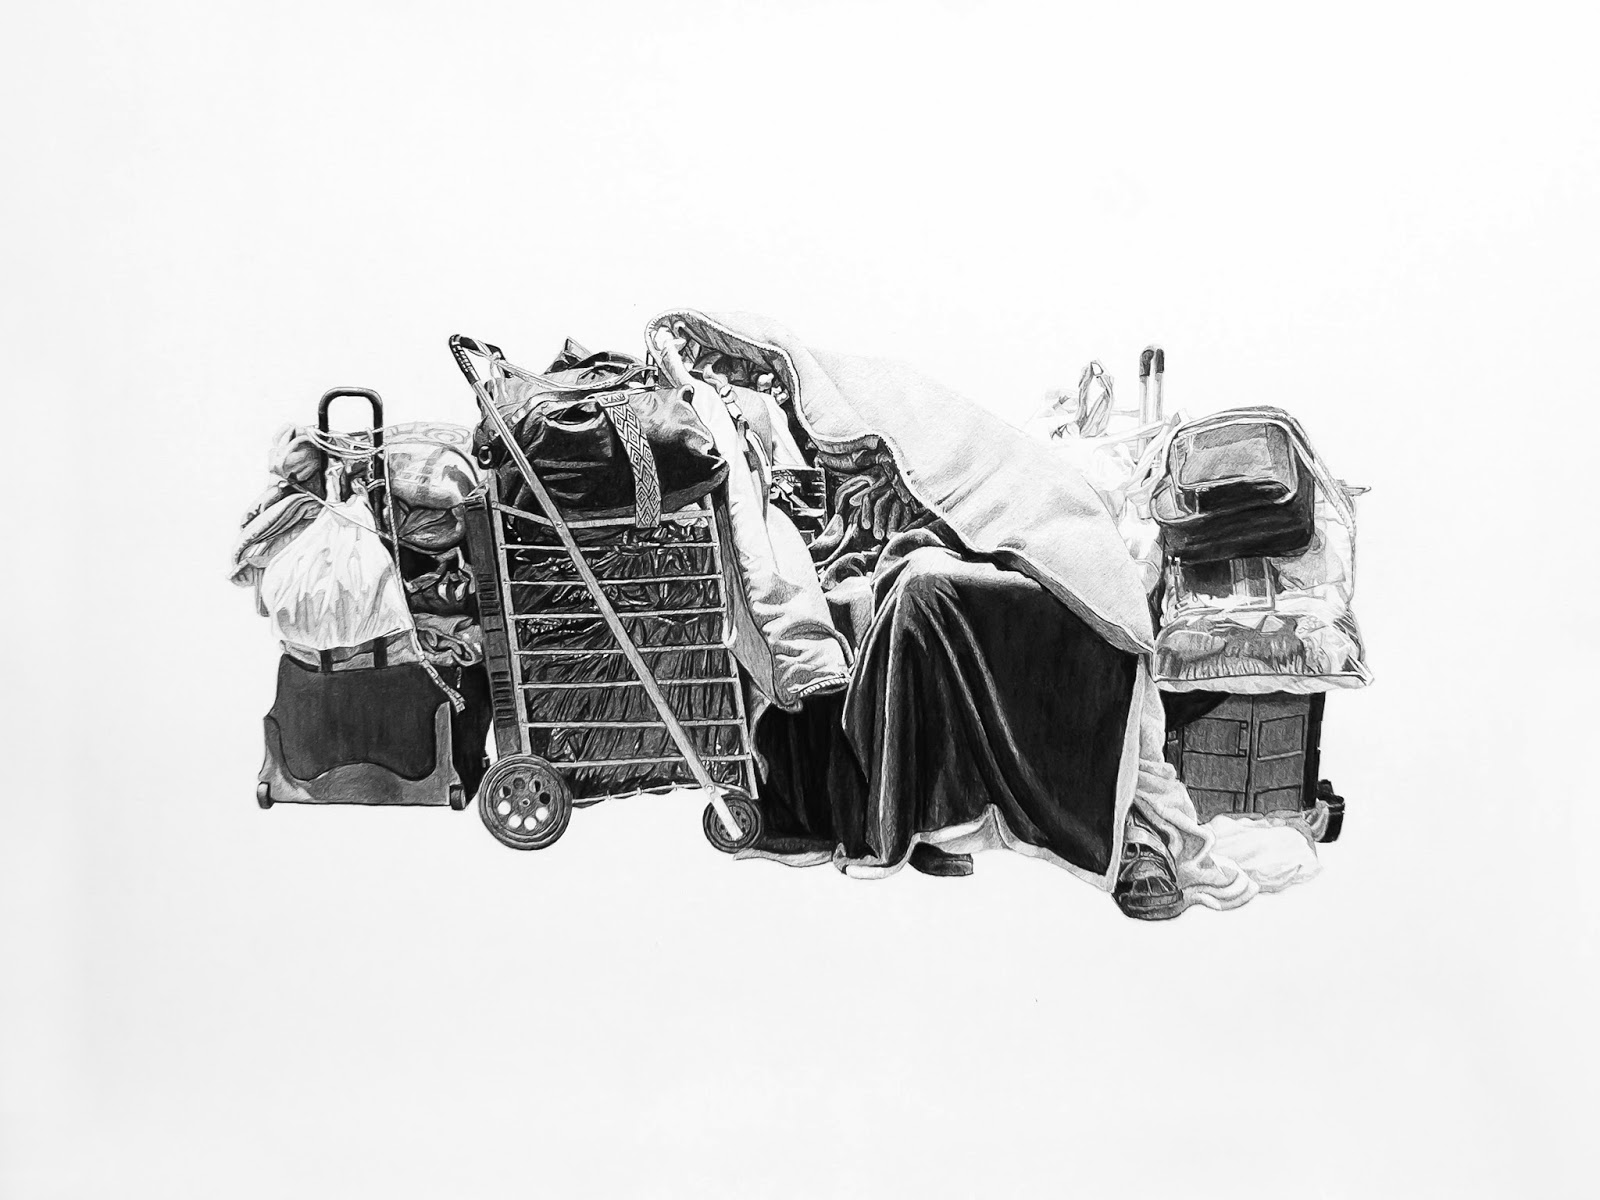 Clarissa, Sleeping | 18x24in | Charcoal and Graphite on Paper | 2013